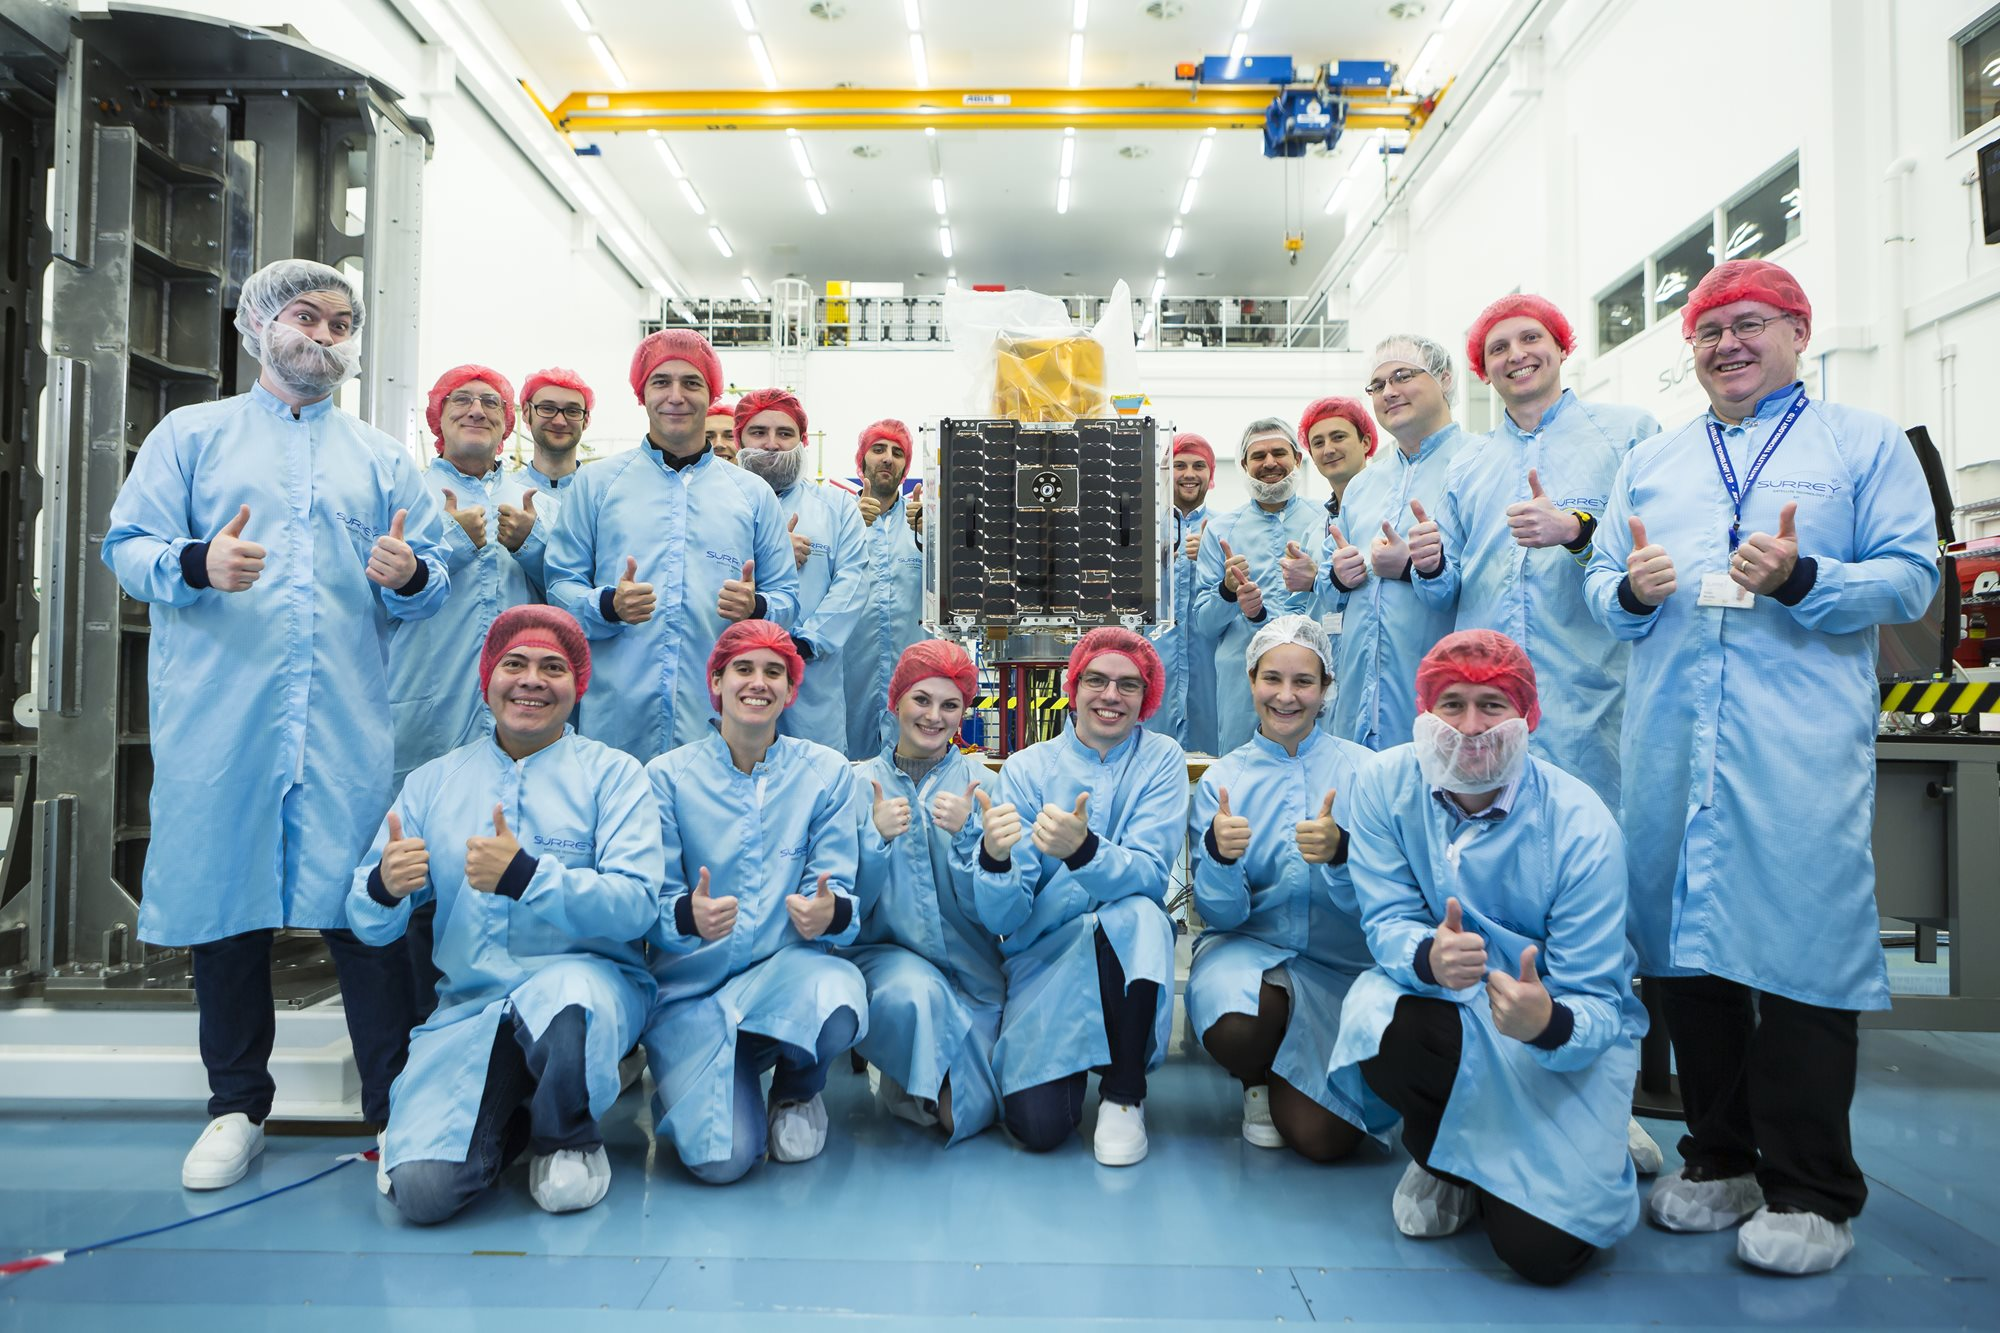 SSTL staff with CARBONITE-2 satellite